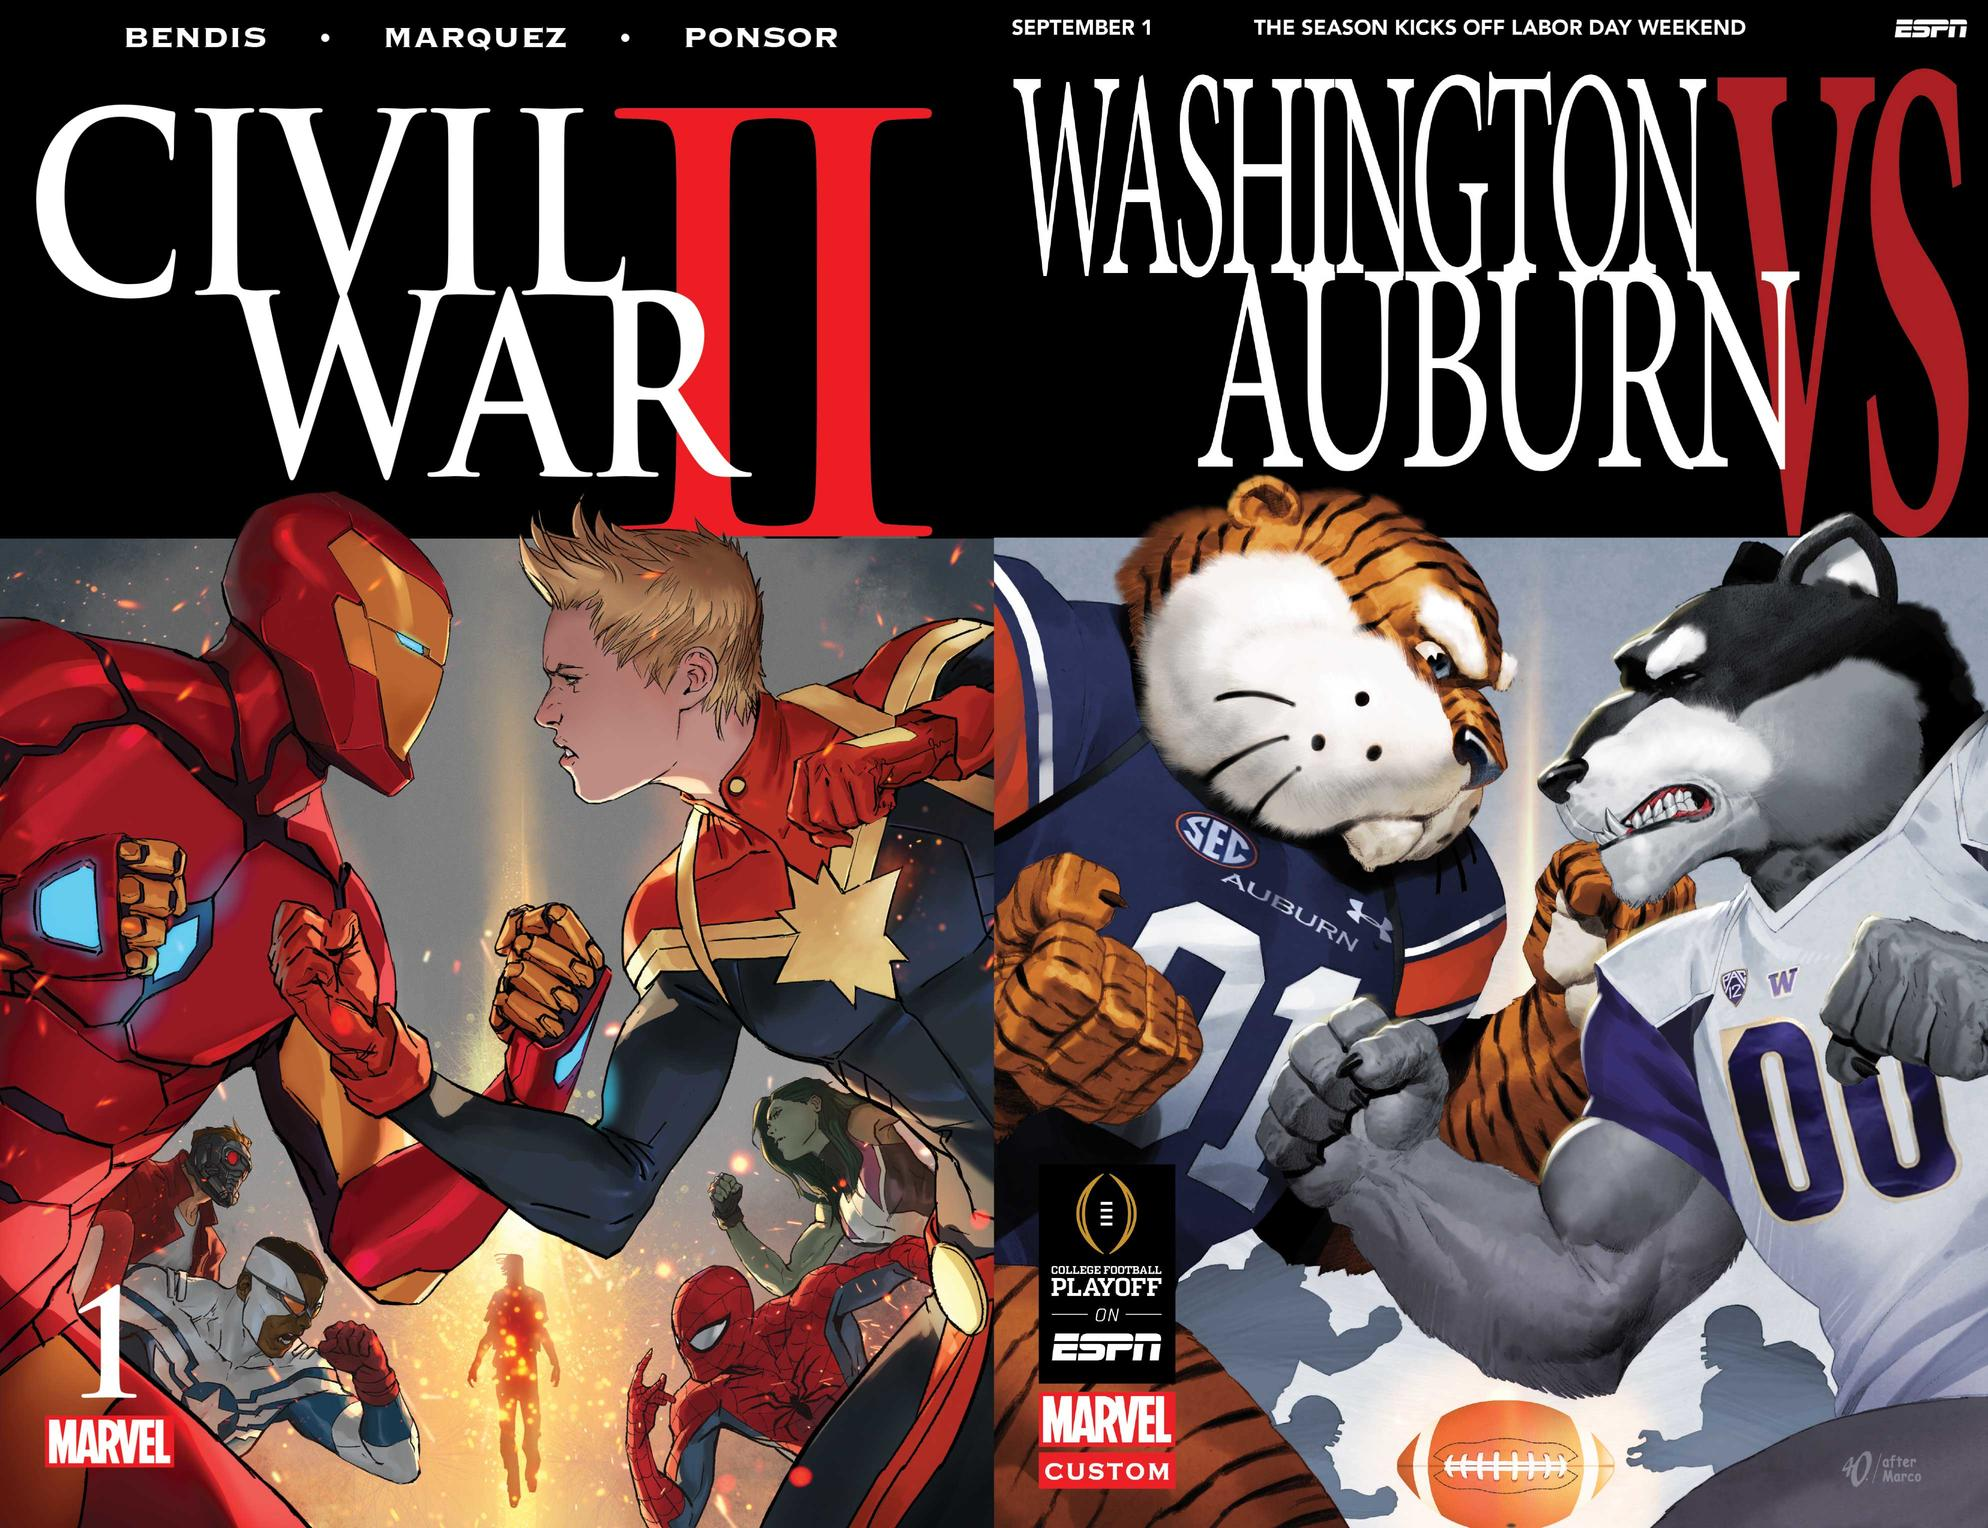 Washington vs Auburn mascot cover